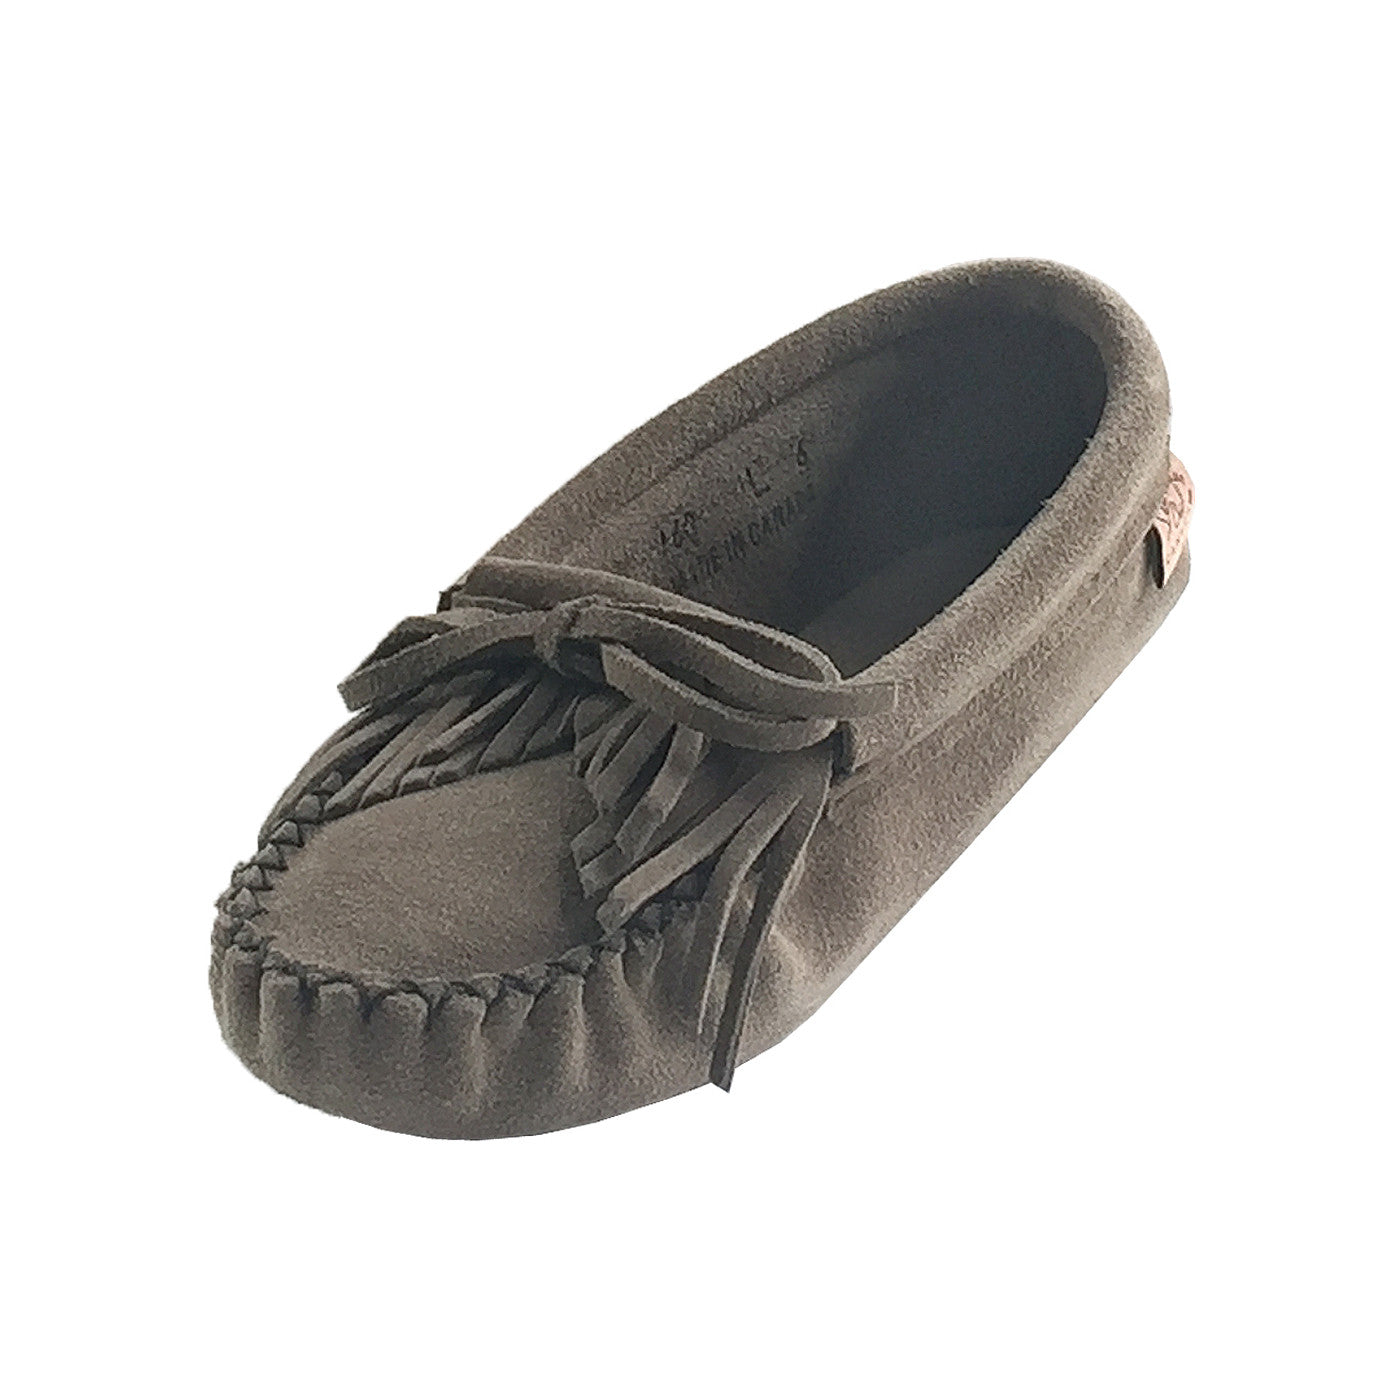 1b7bf88d6890 Women s Soft Sole Gray Genuine Suede Moccasin Slippers for Sale ...